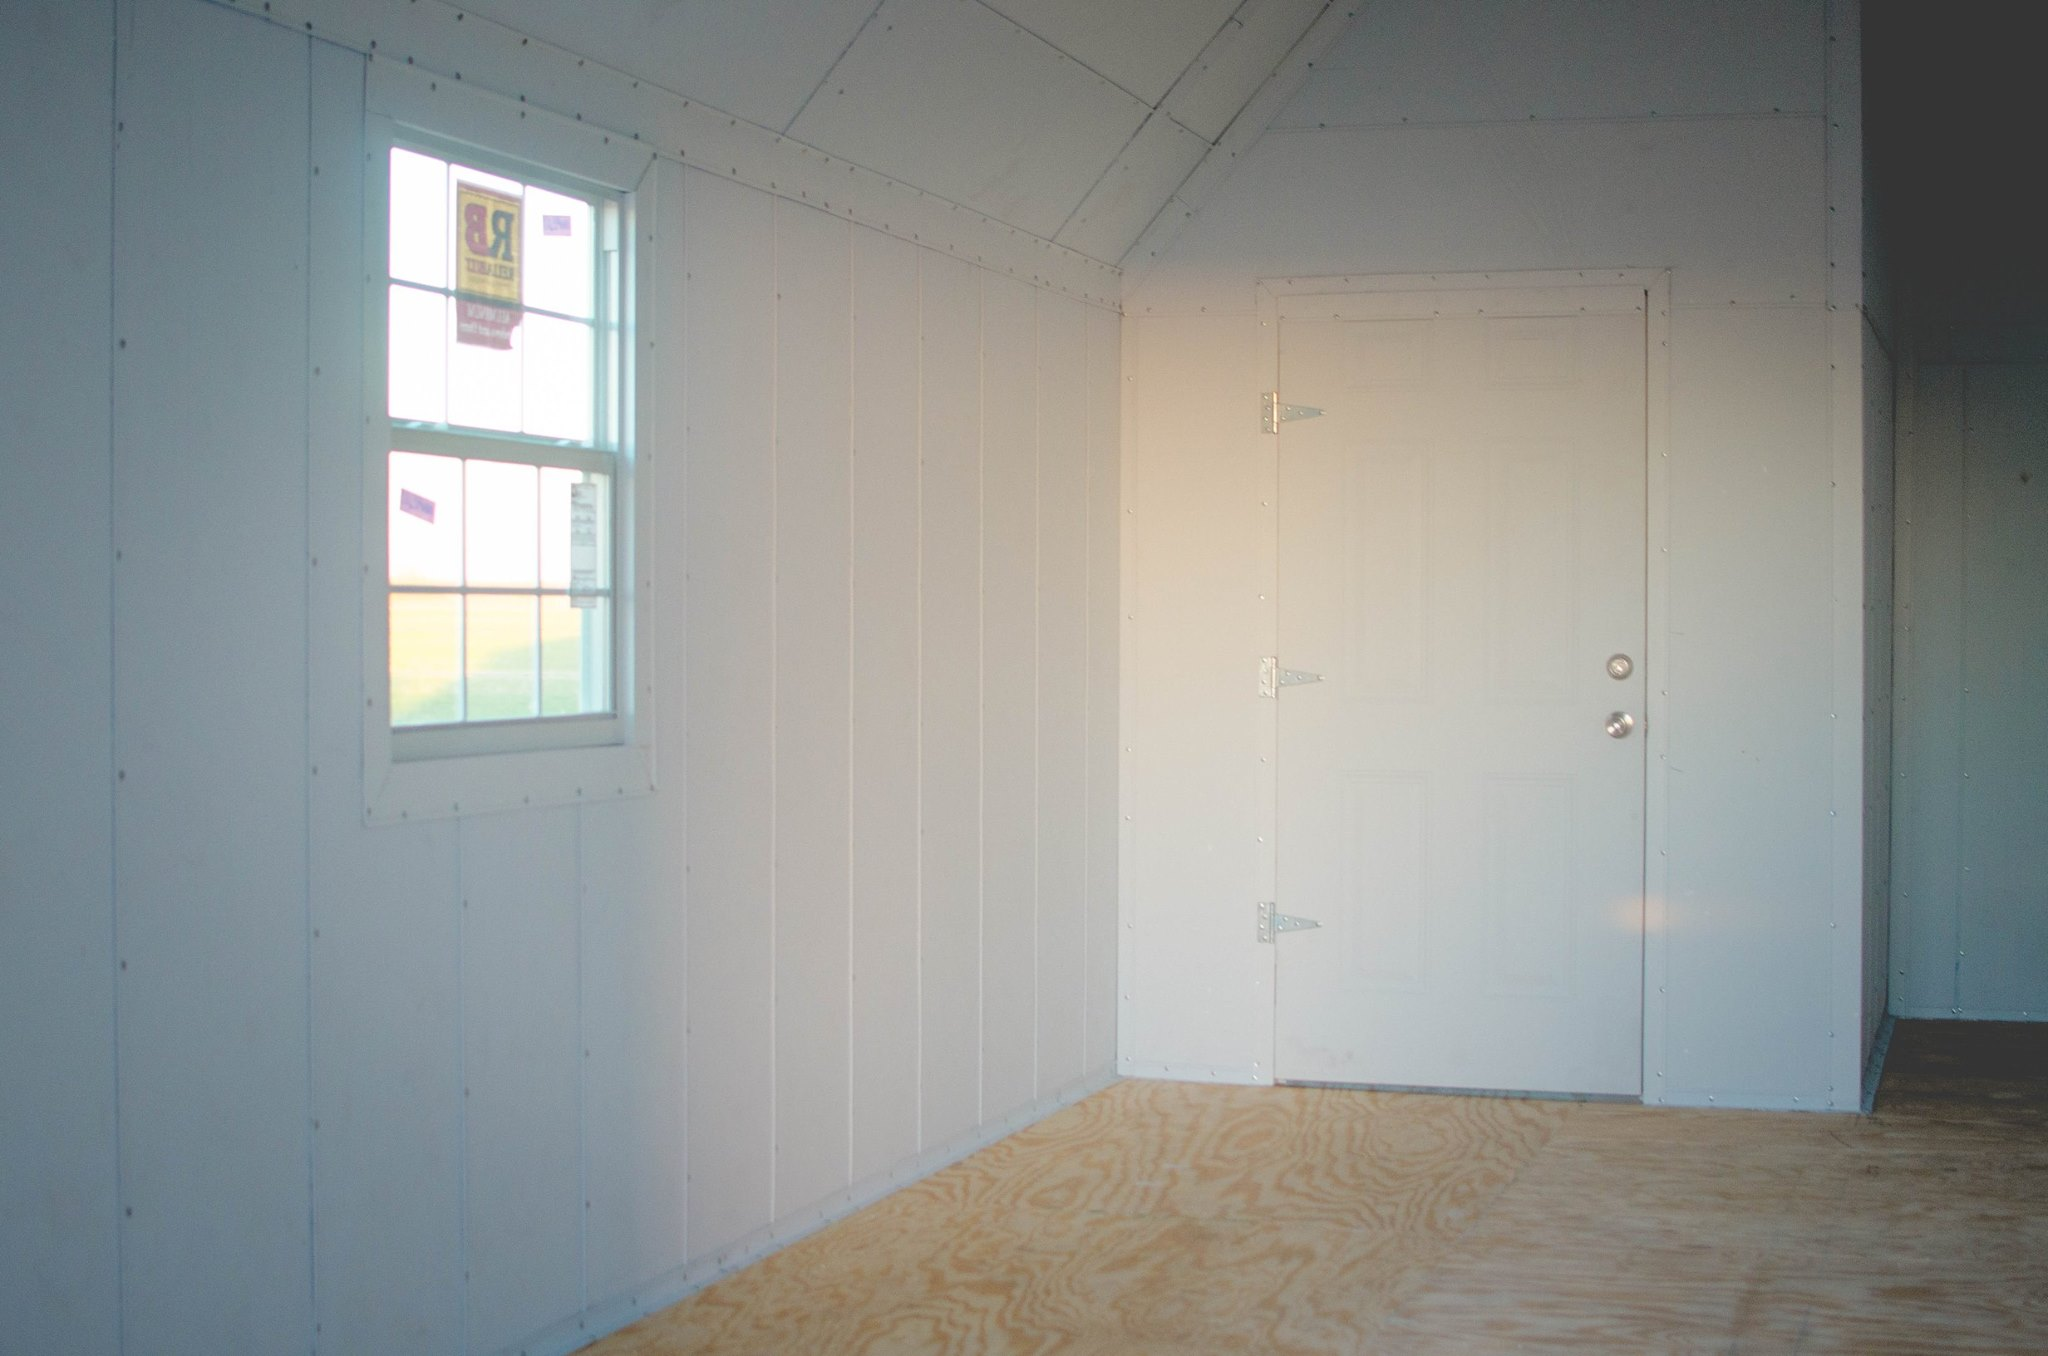 12x36InteriorPartition